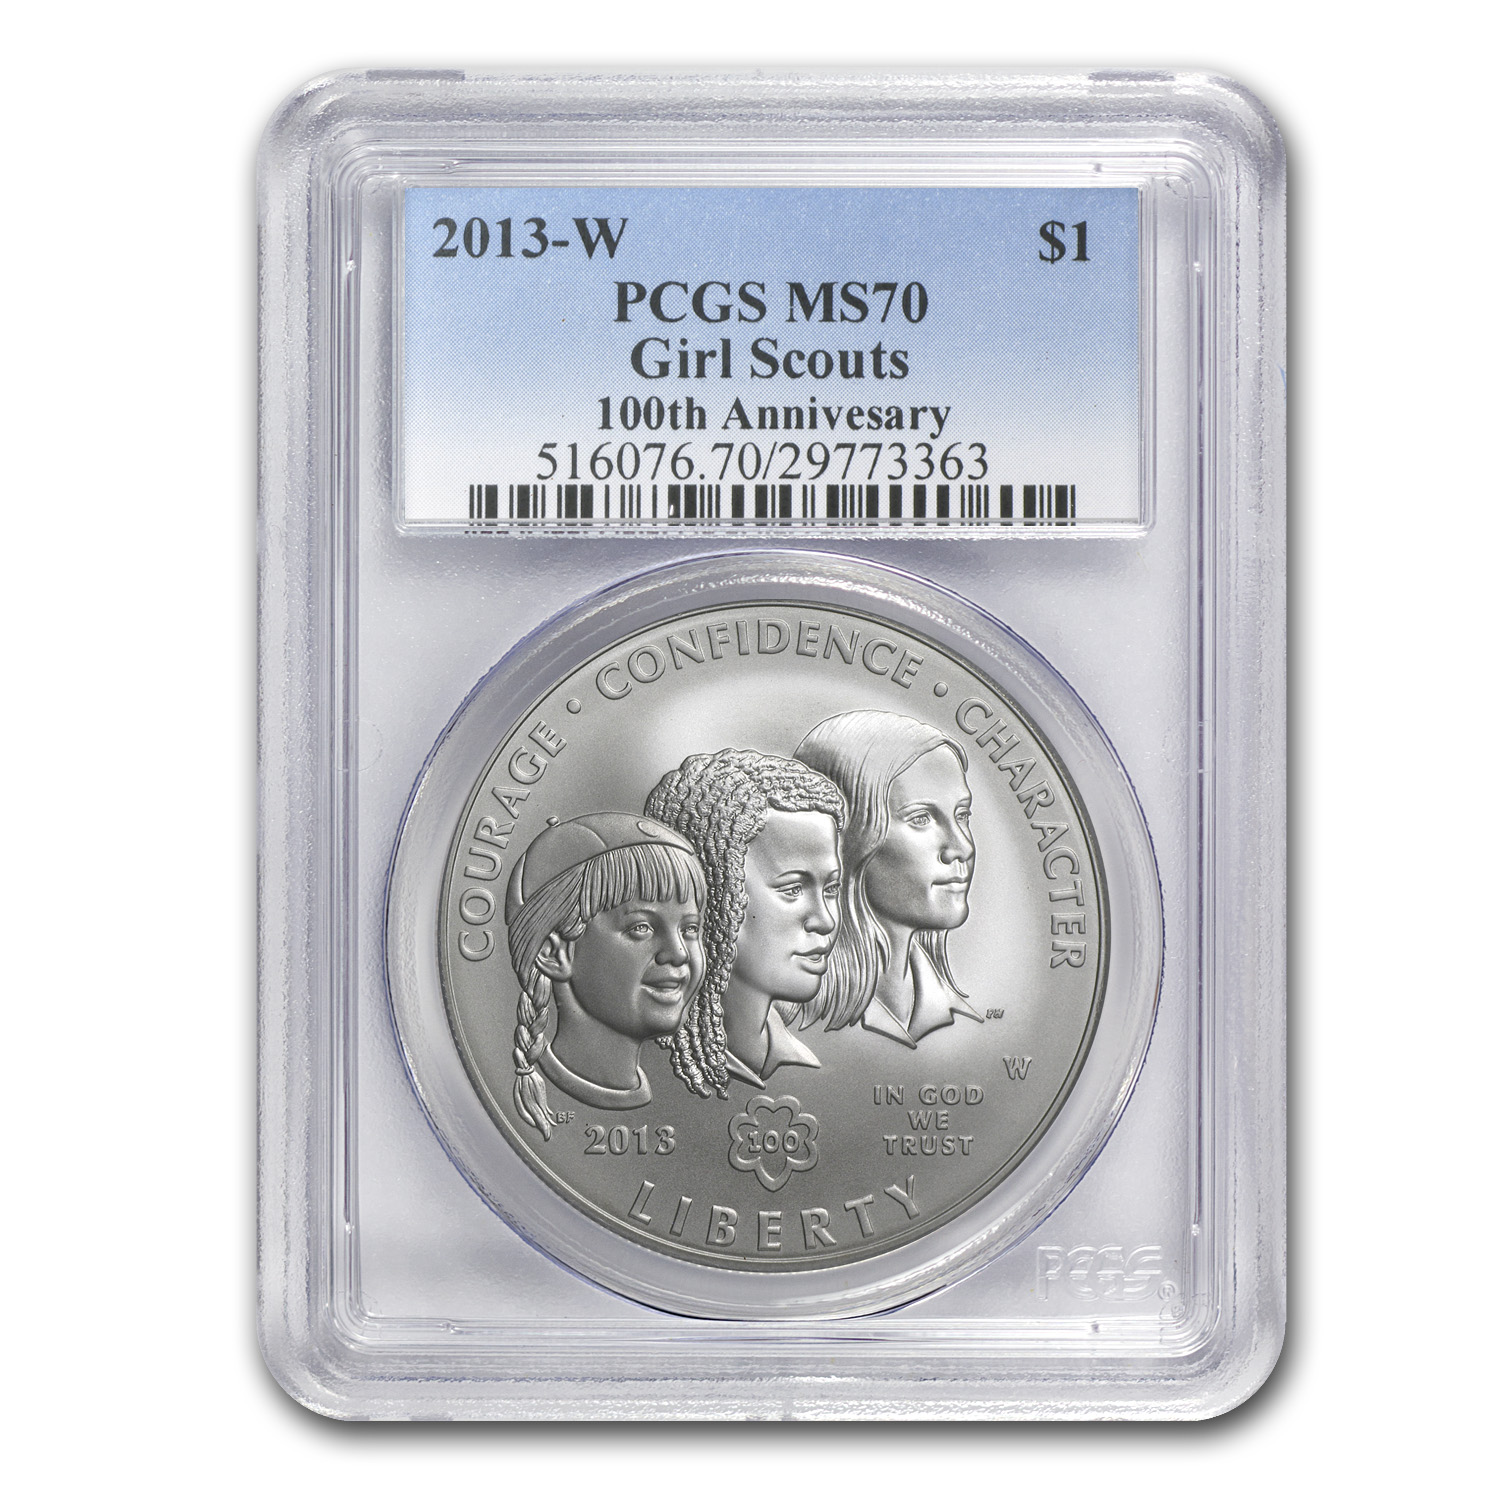 2013-W Girl Scouts $1 Silver Commem MS-70 PCGS